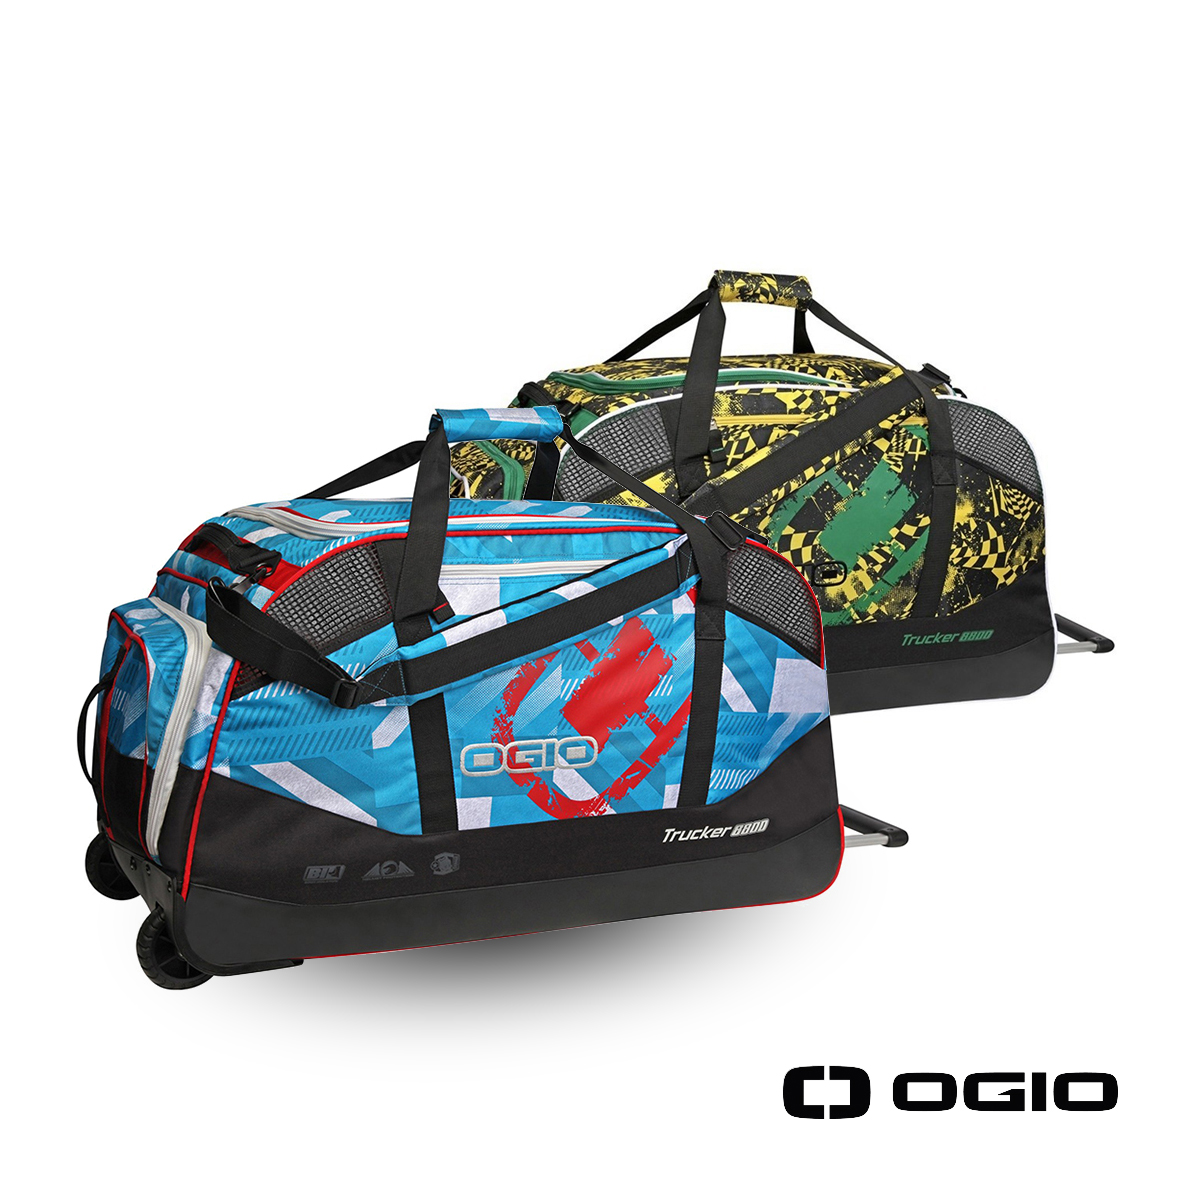 Ogio Trucker 8800 Le Wheeled Bag